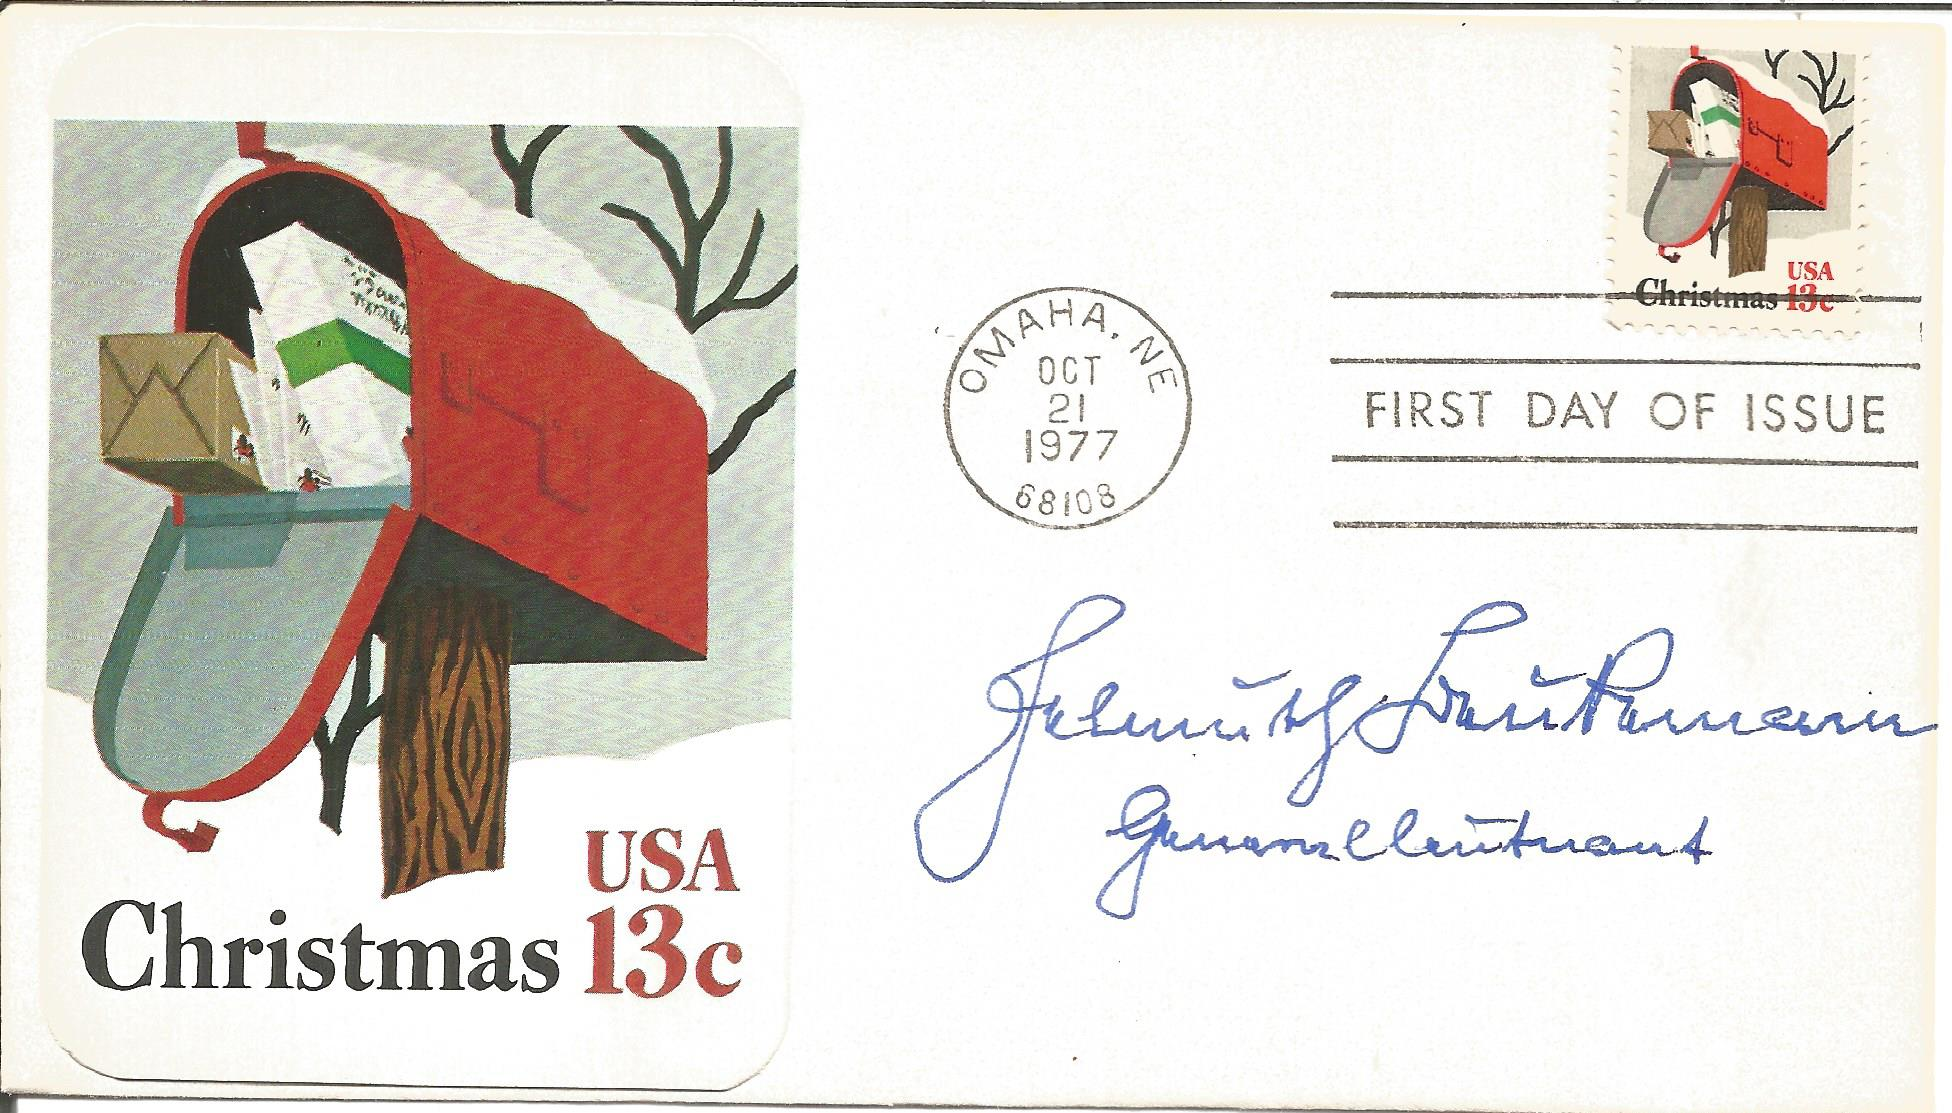 Helmuth Beubermann signed Christmas USA 13c FDC postmark Omaha N.E. 21 Oct 1977. Good condition. All